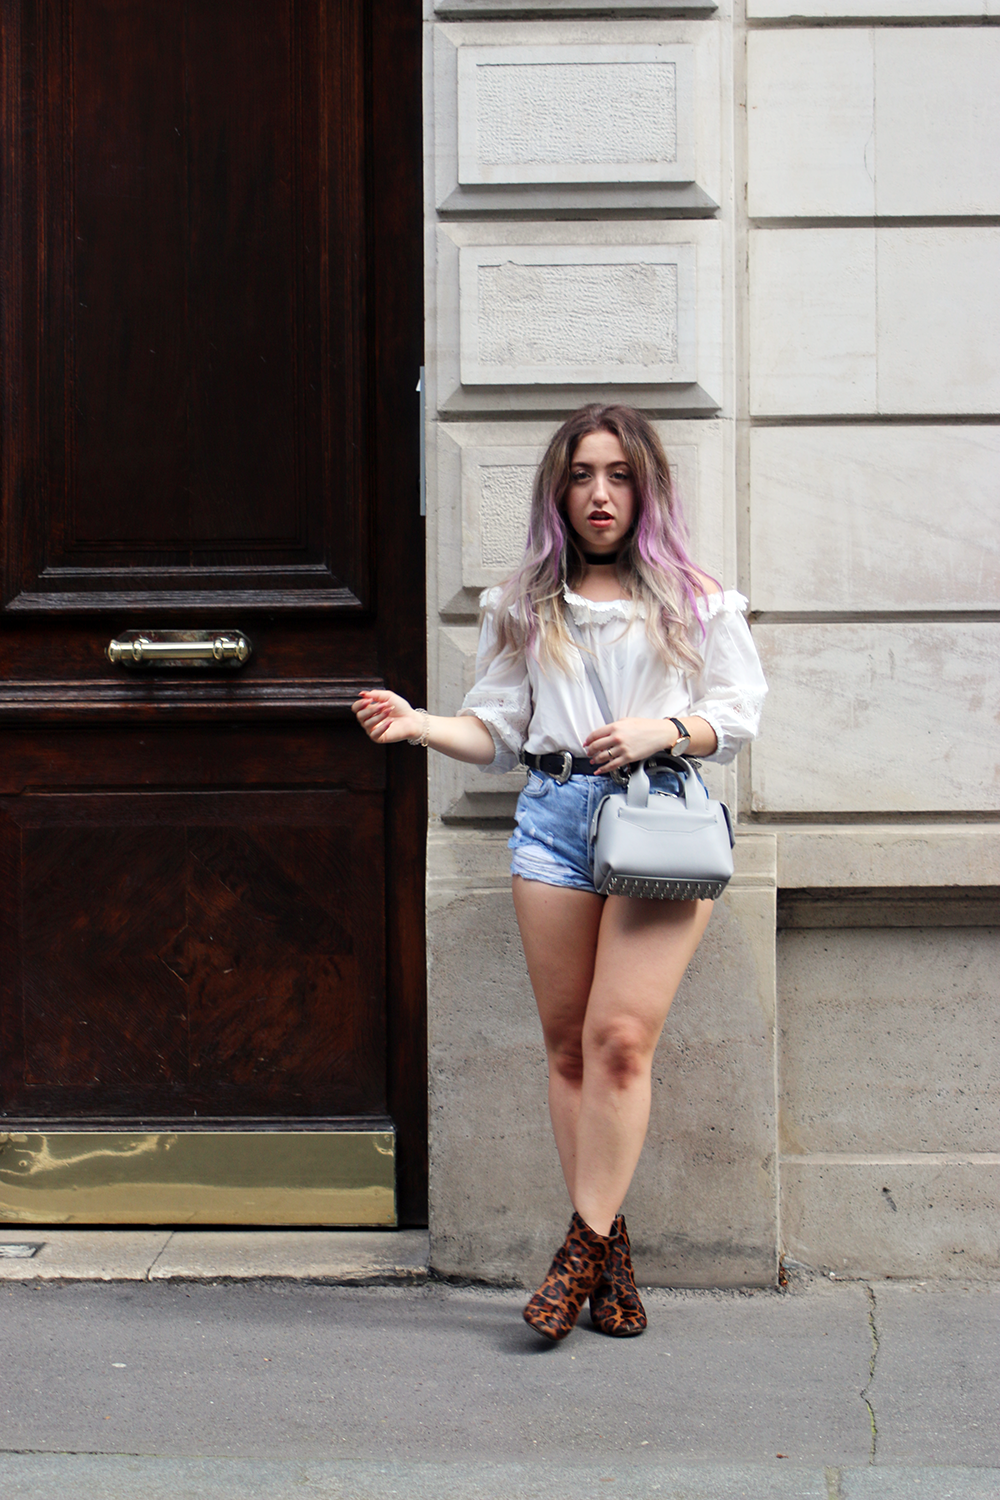 OUTFIT OF THE DAY | What I Wore in Paris